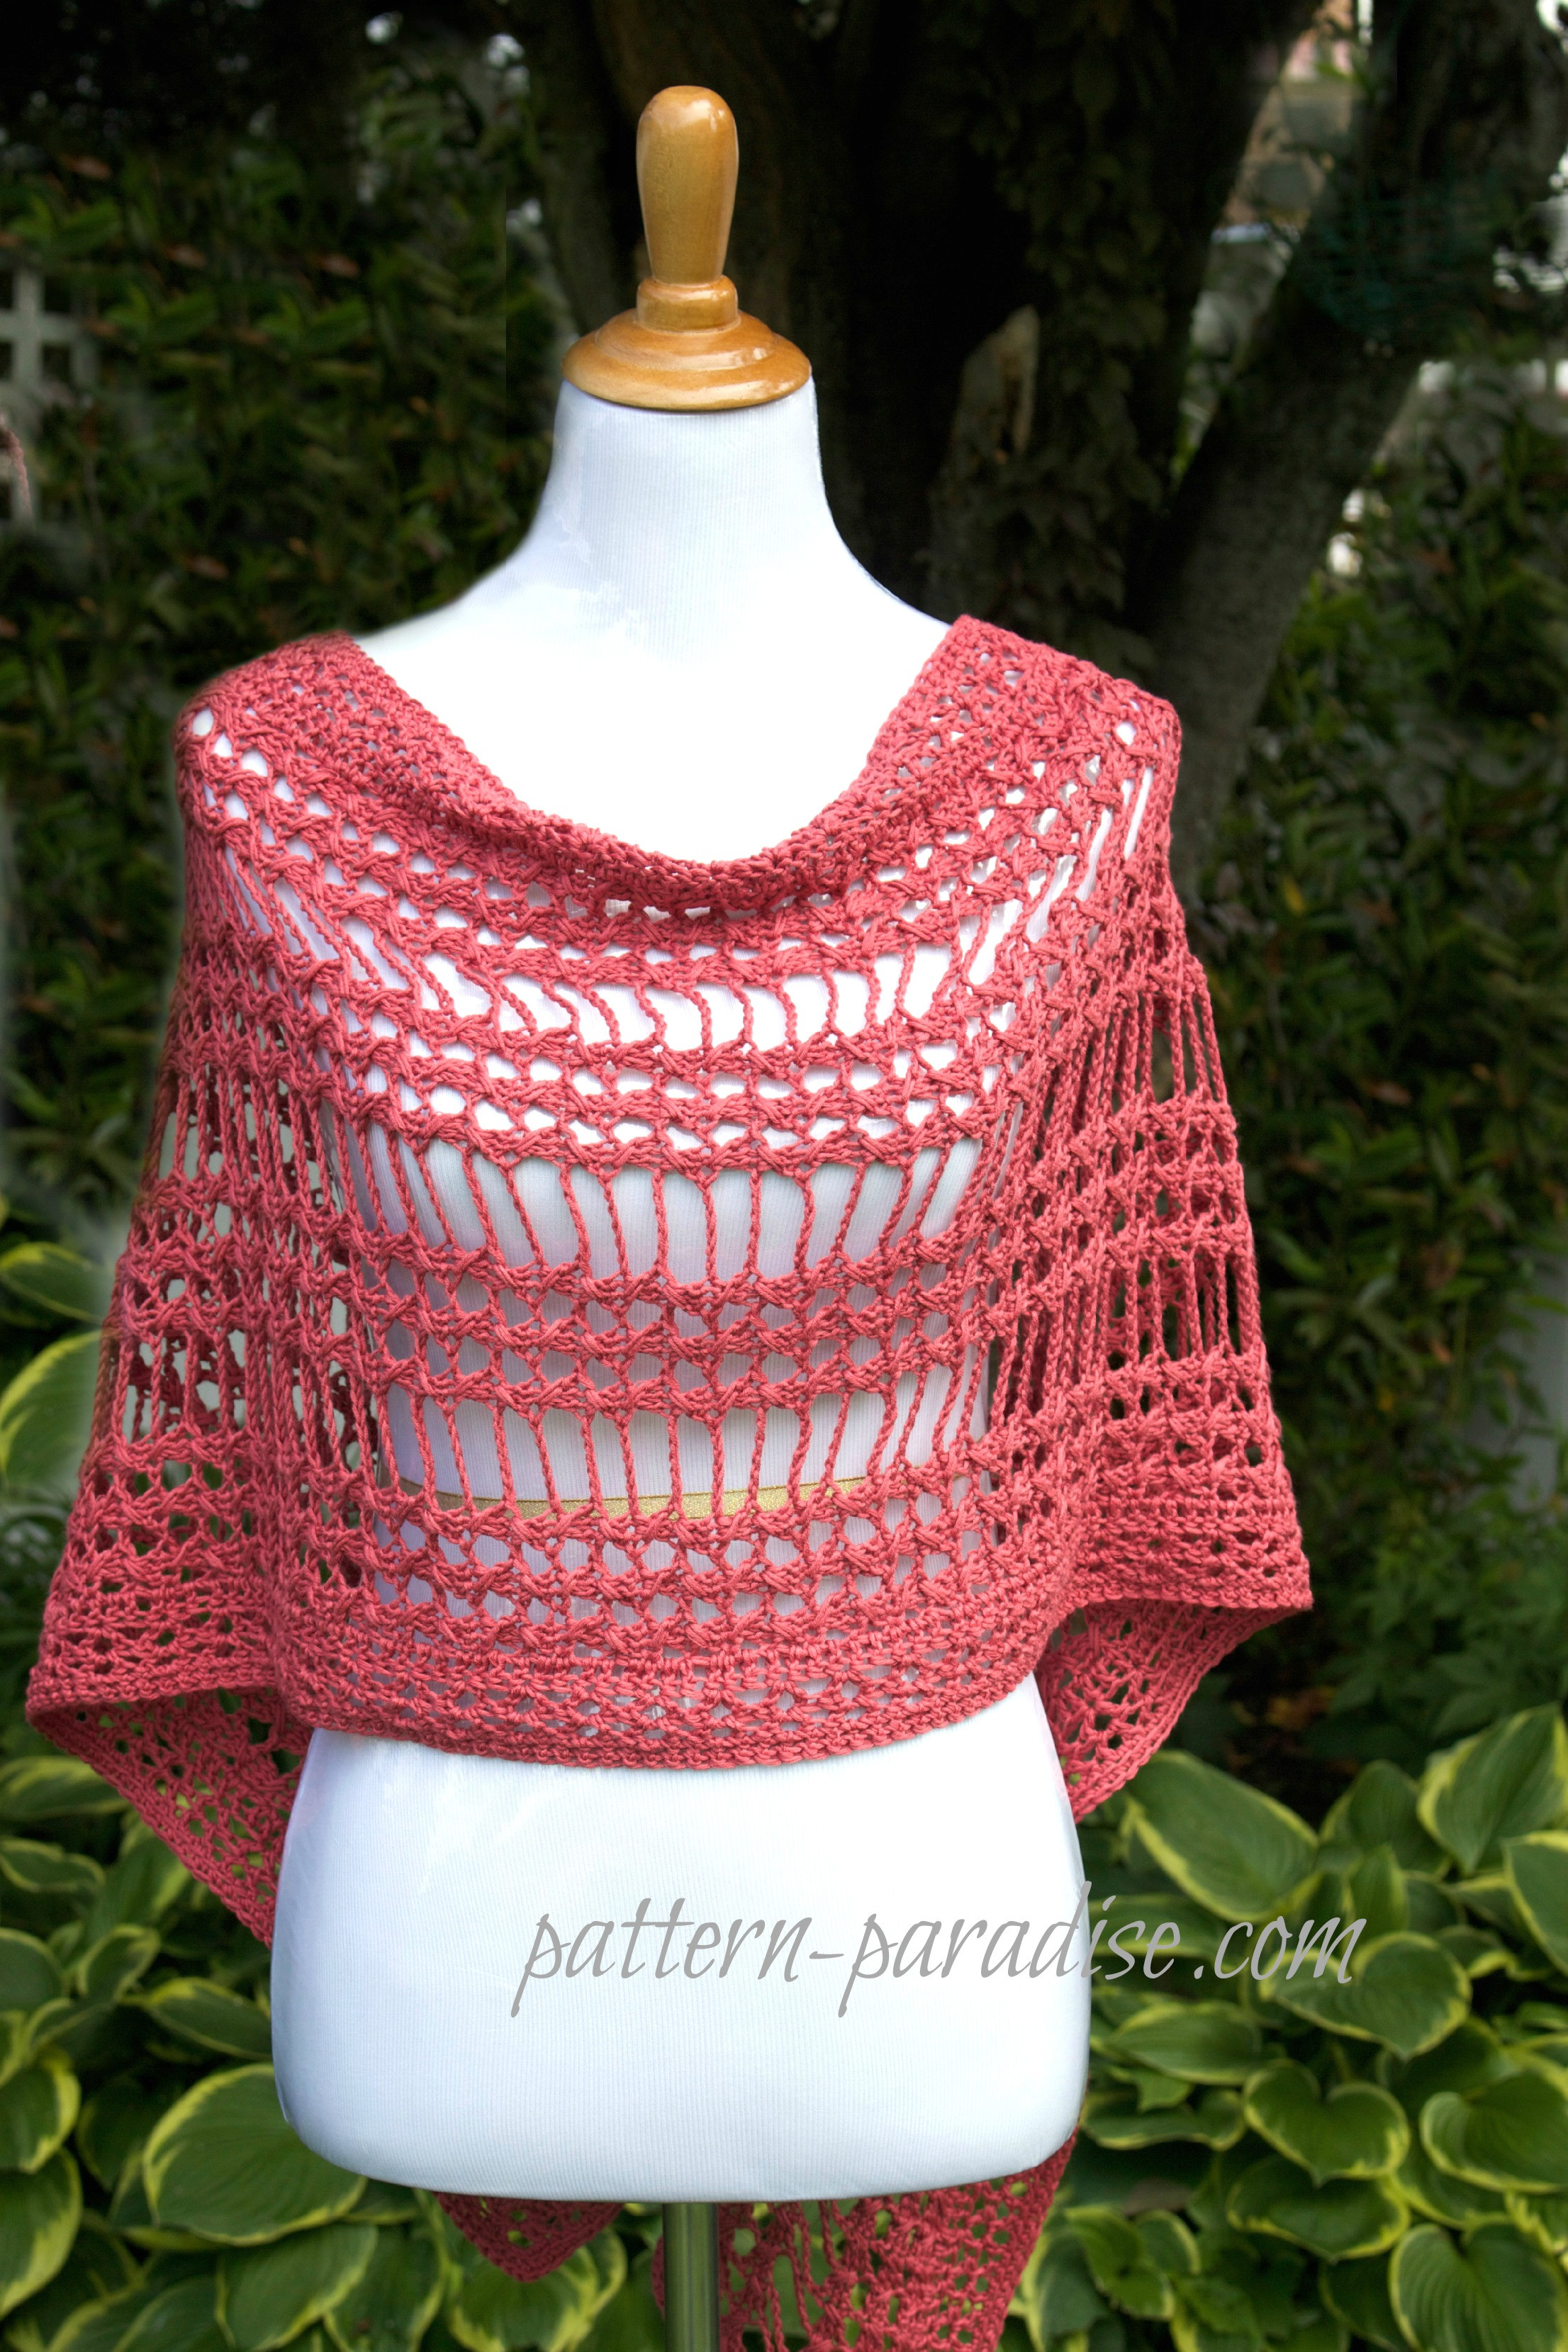 Lovely Free Crochet Pattern X Stitch Challenge Summer Wrap Crochet Shawl Patterns and Wraps Of Amazing 43 Images Crochet Shawl Patterns and Wraps